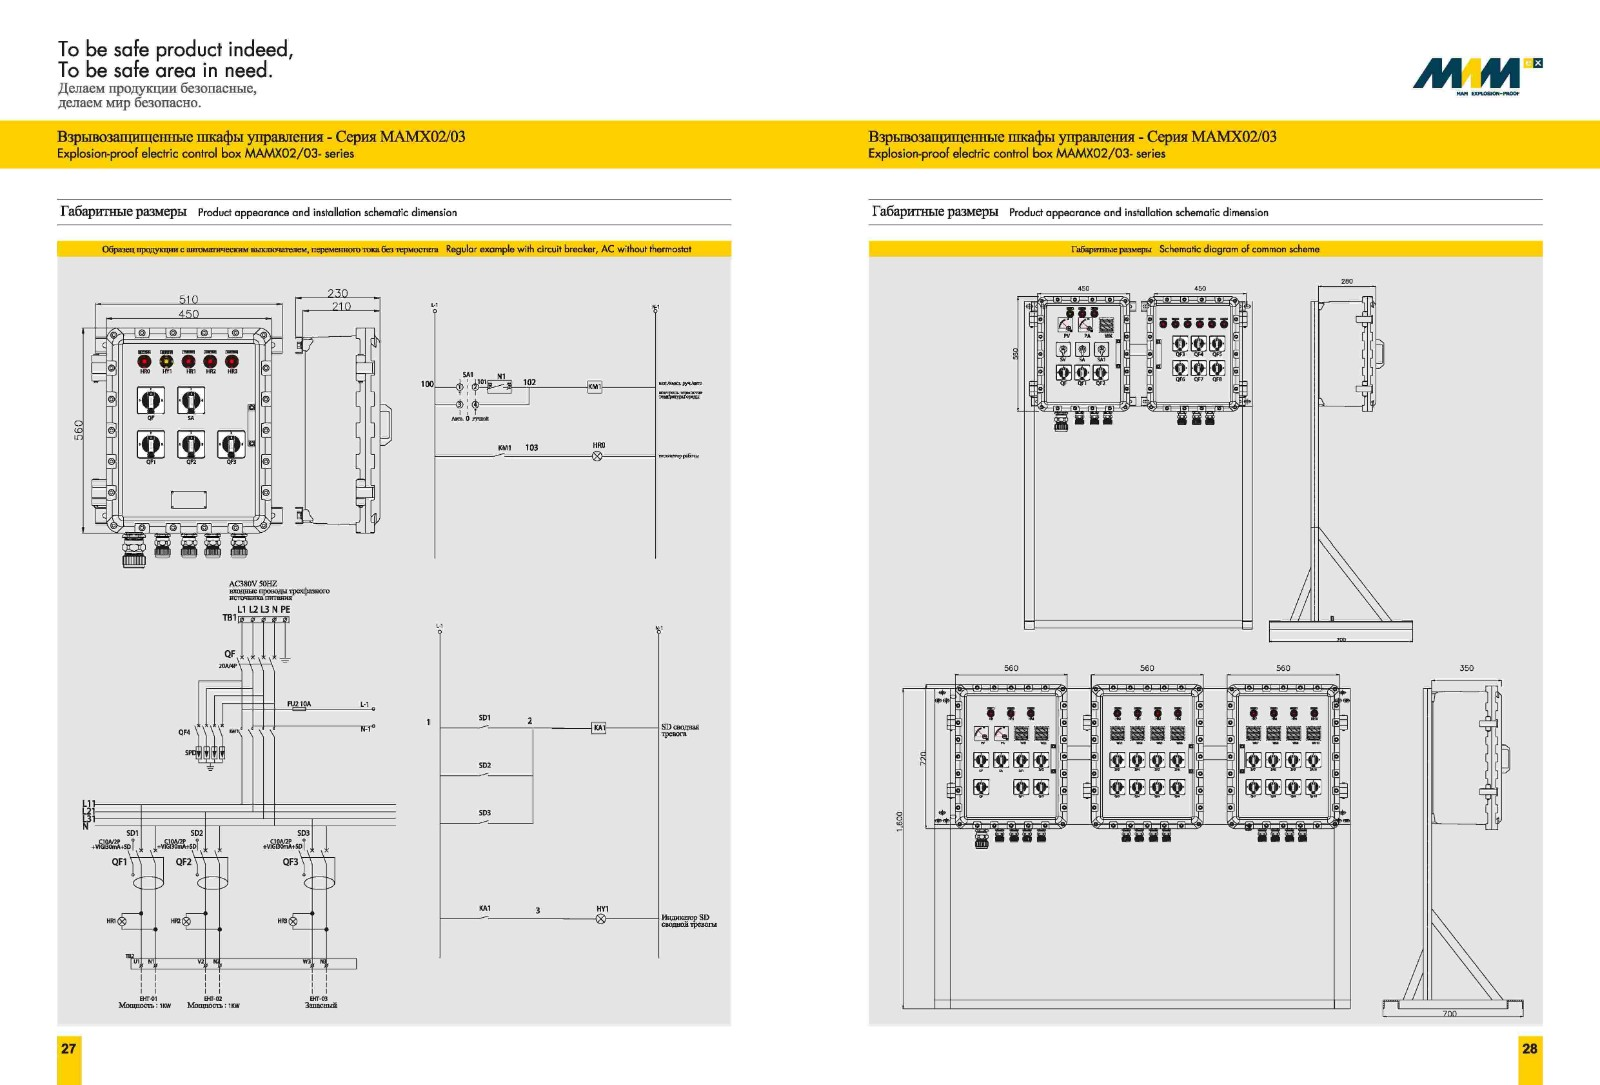 Explosion-proof Electric Control Box MAMX—02/03 Series